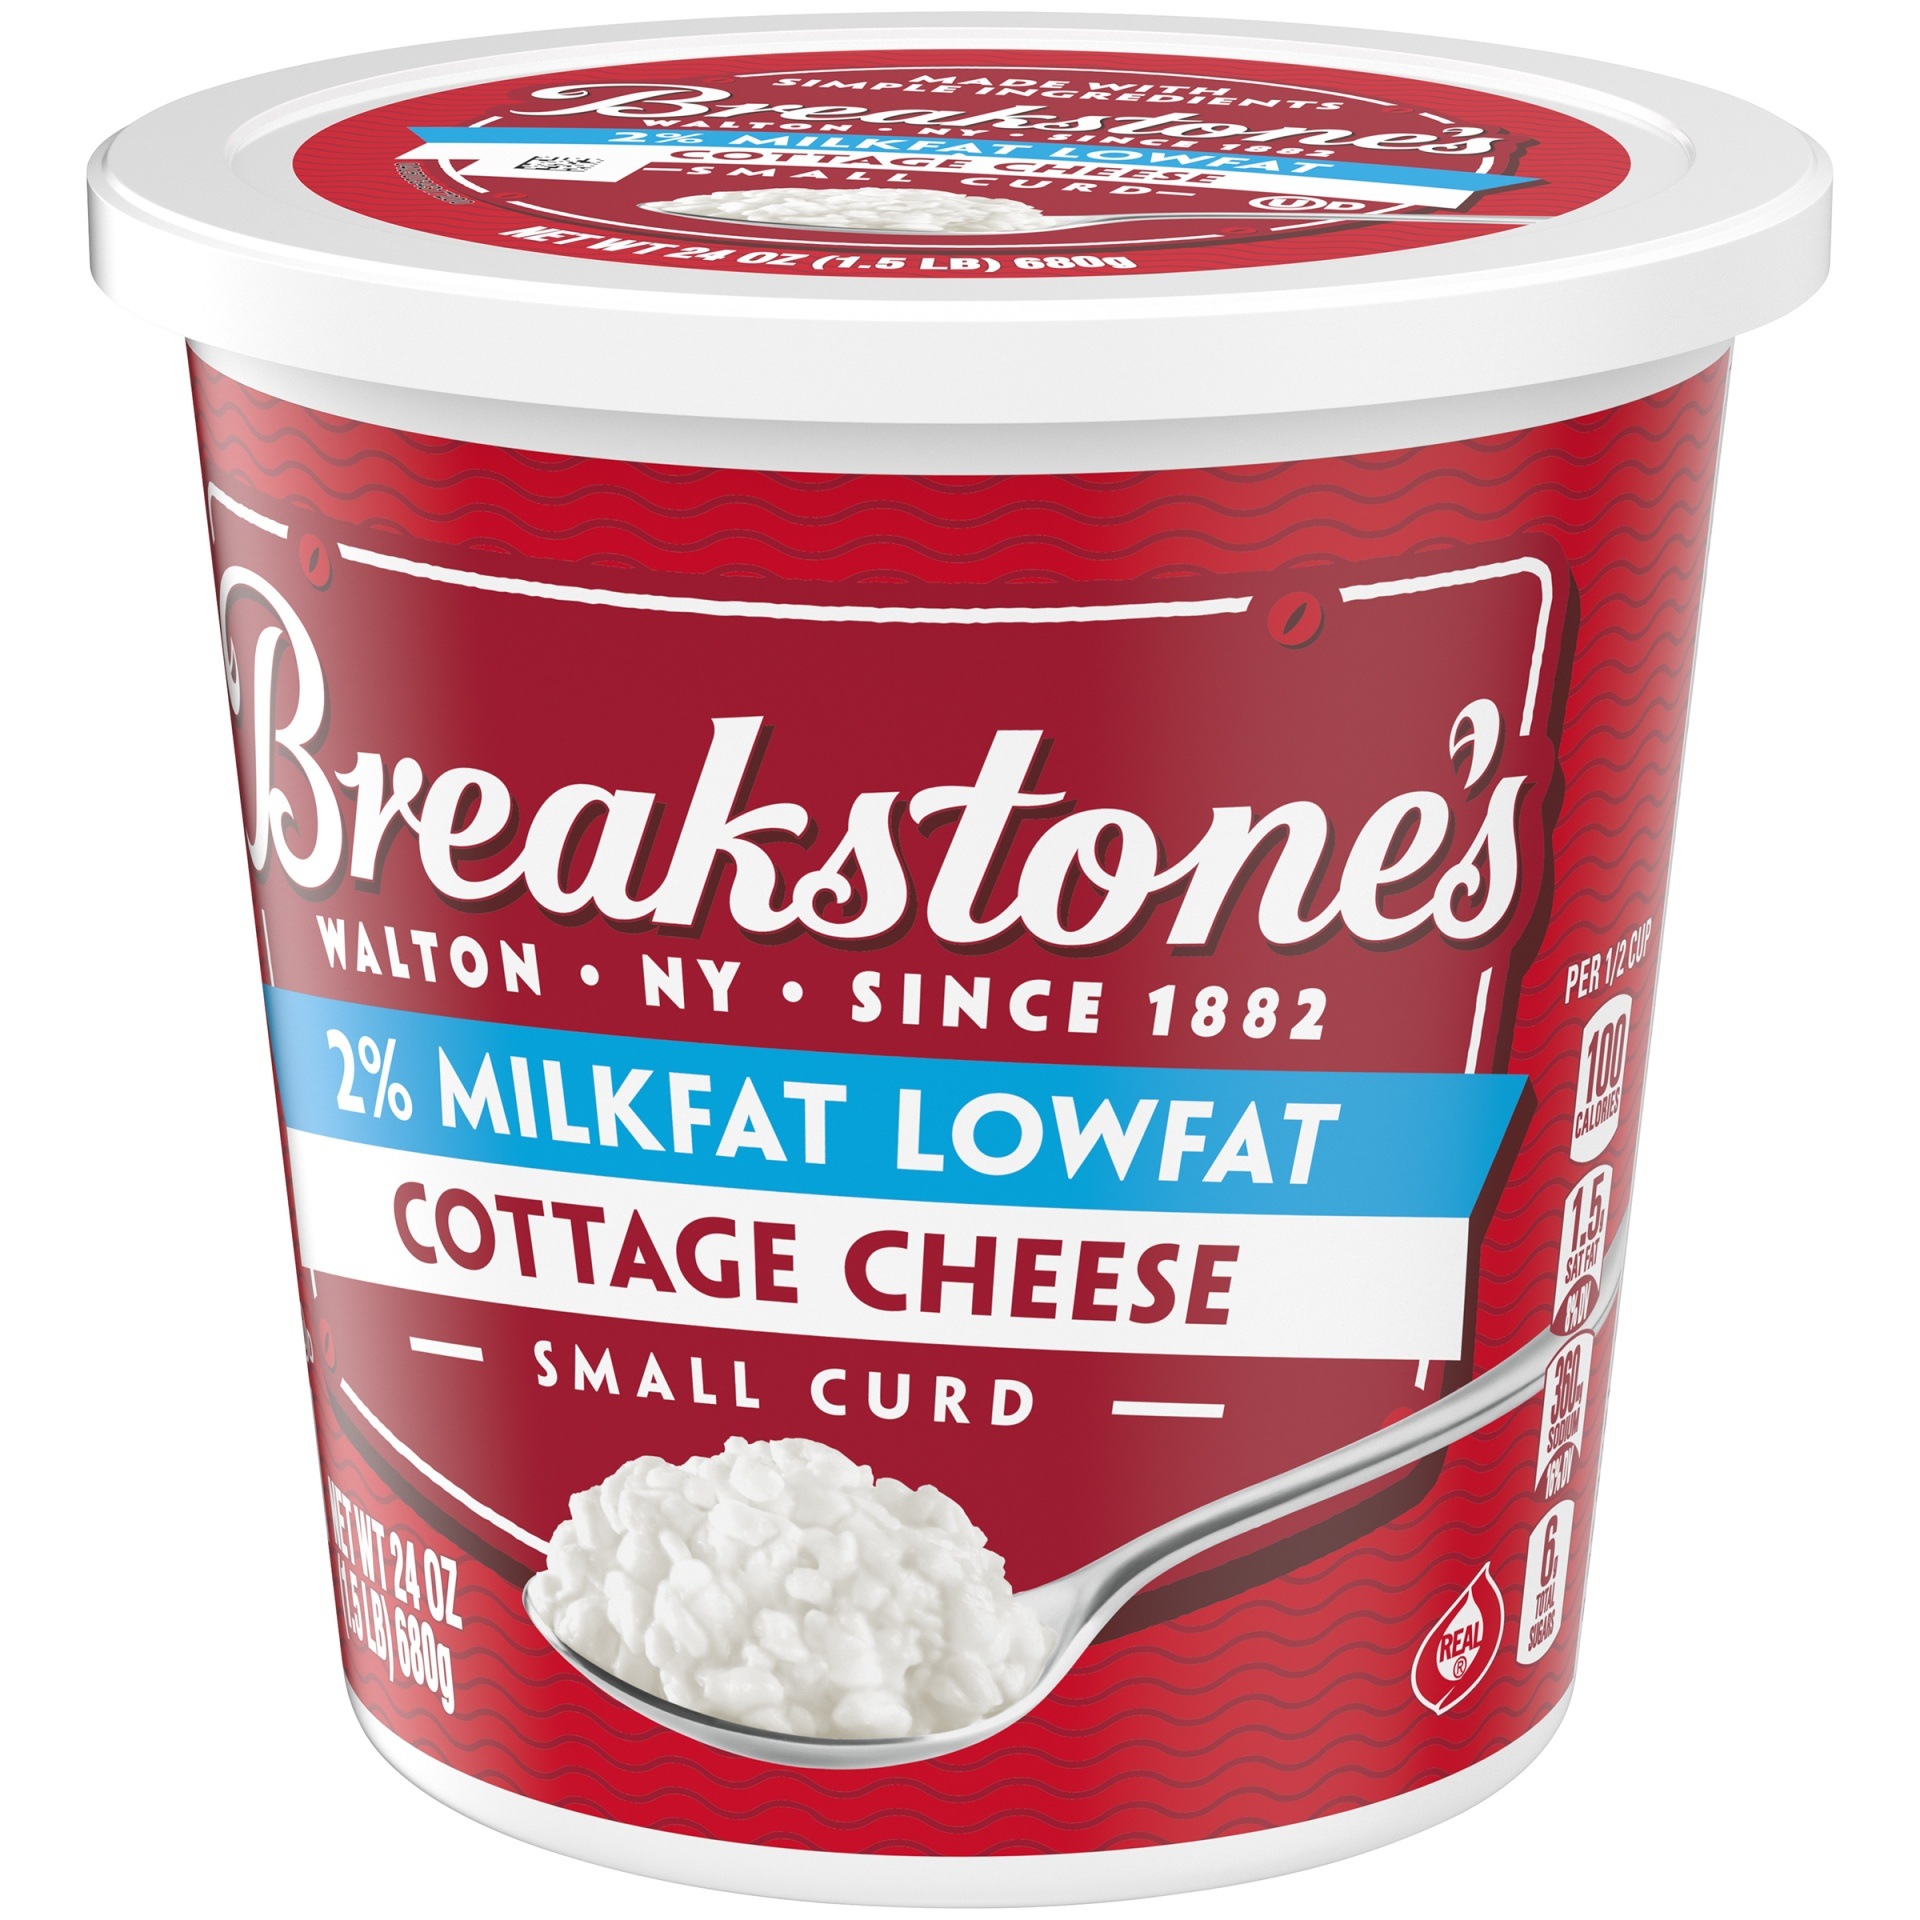 slide 3 of 6, Breakstone's Small Curd 2% Milkfat Cottage Cheese,